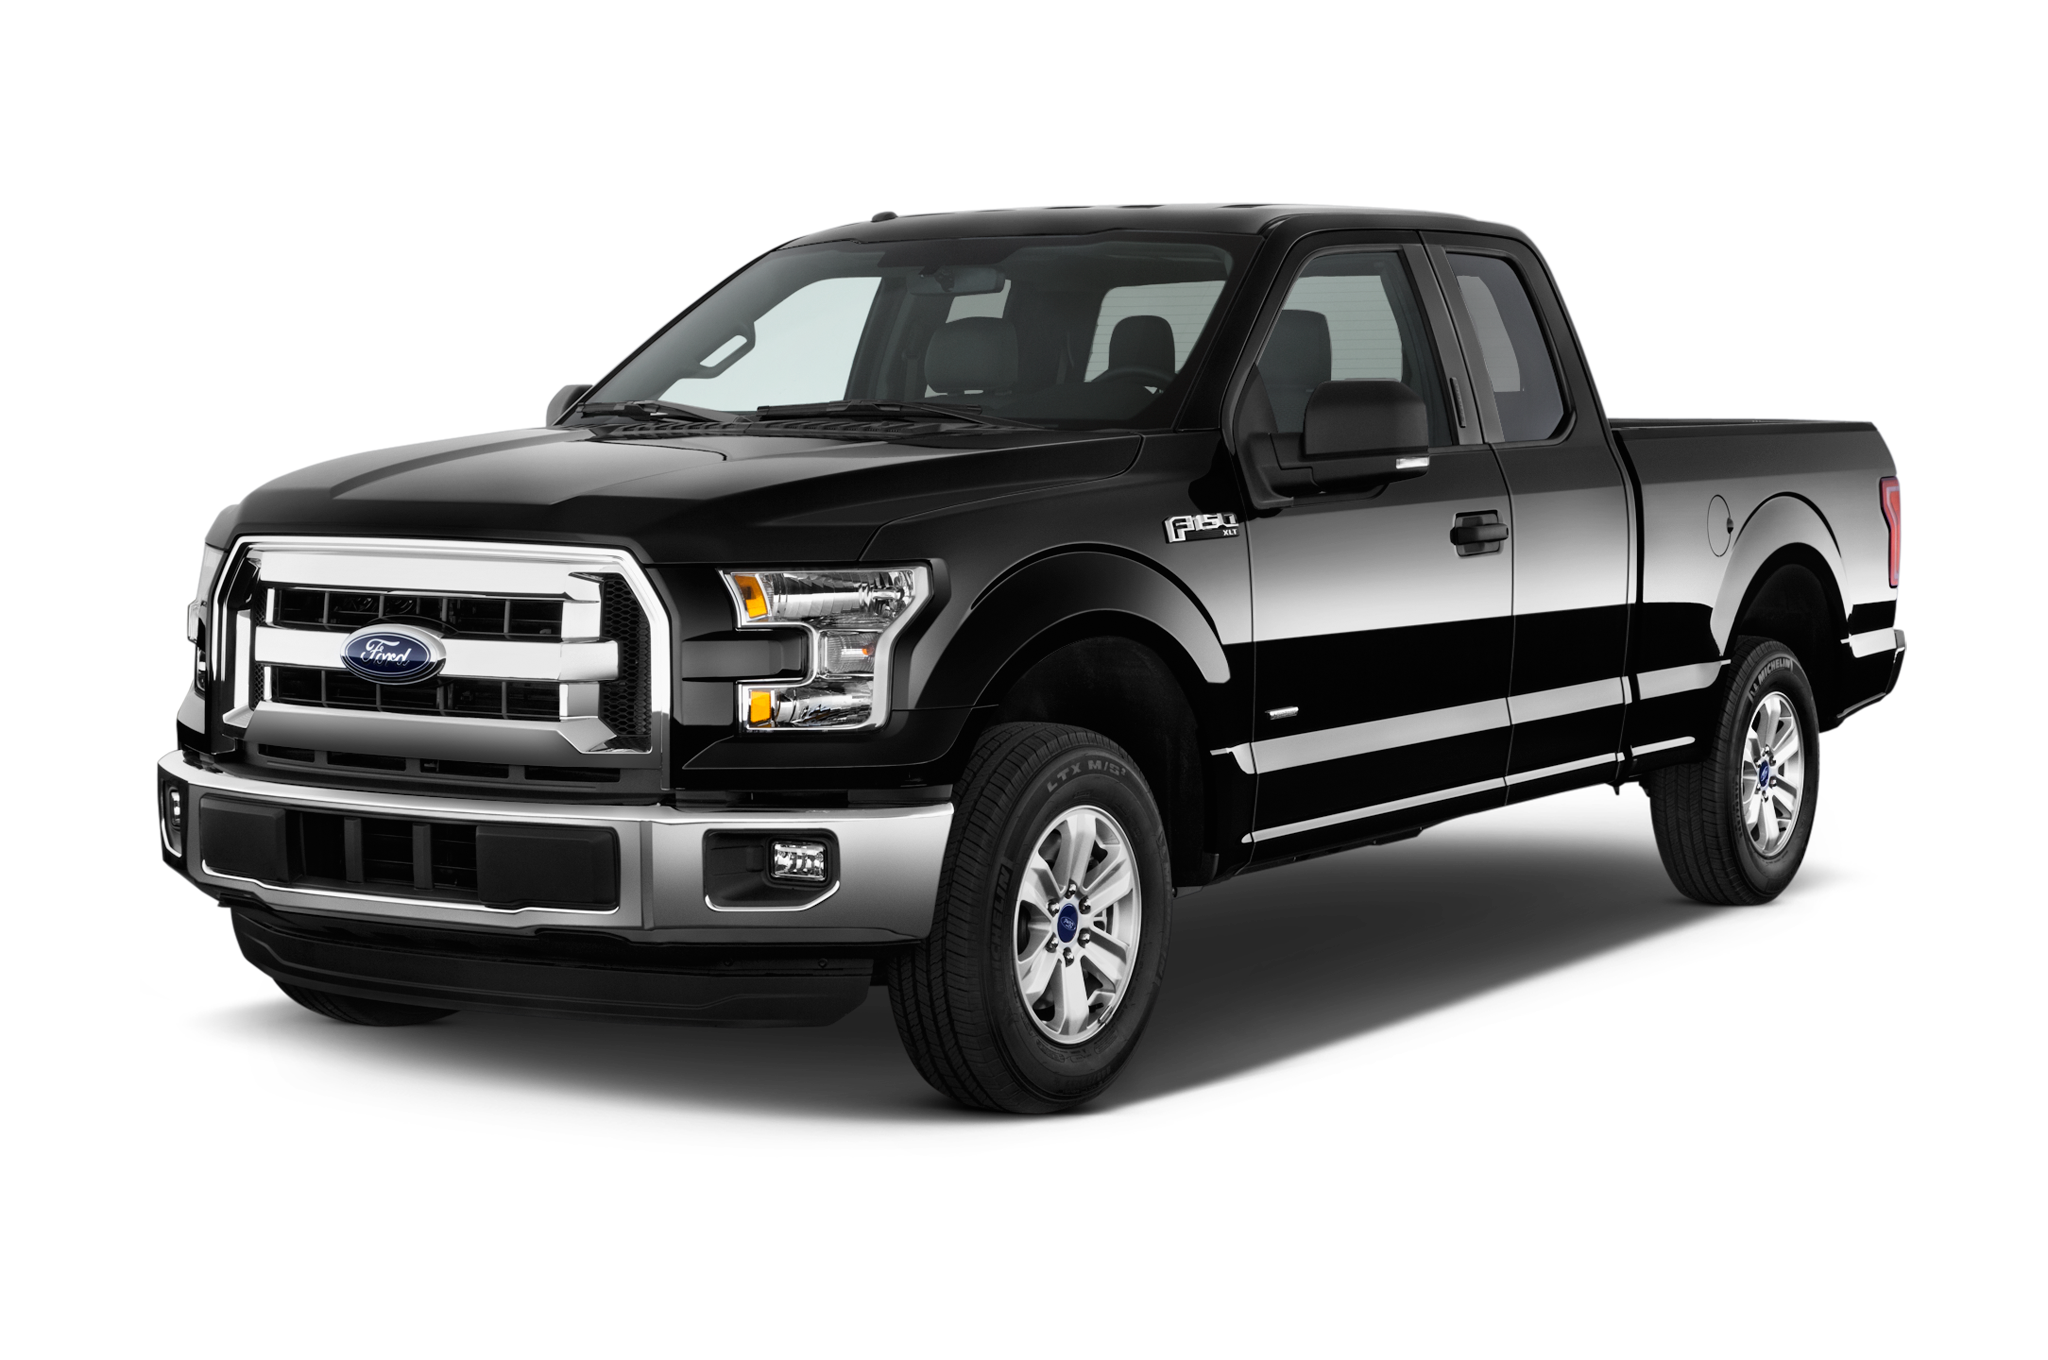 2016 ford f 150 xlt 4x4 supercab 145 in pricing msn autos. Black Bedroom Furniture Sets. Home Design Ideas